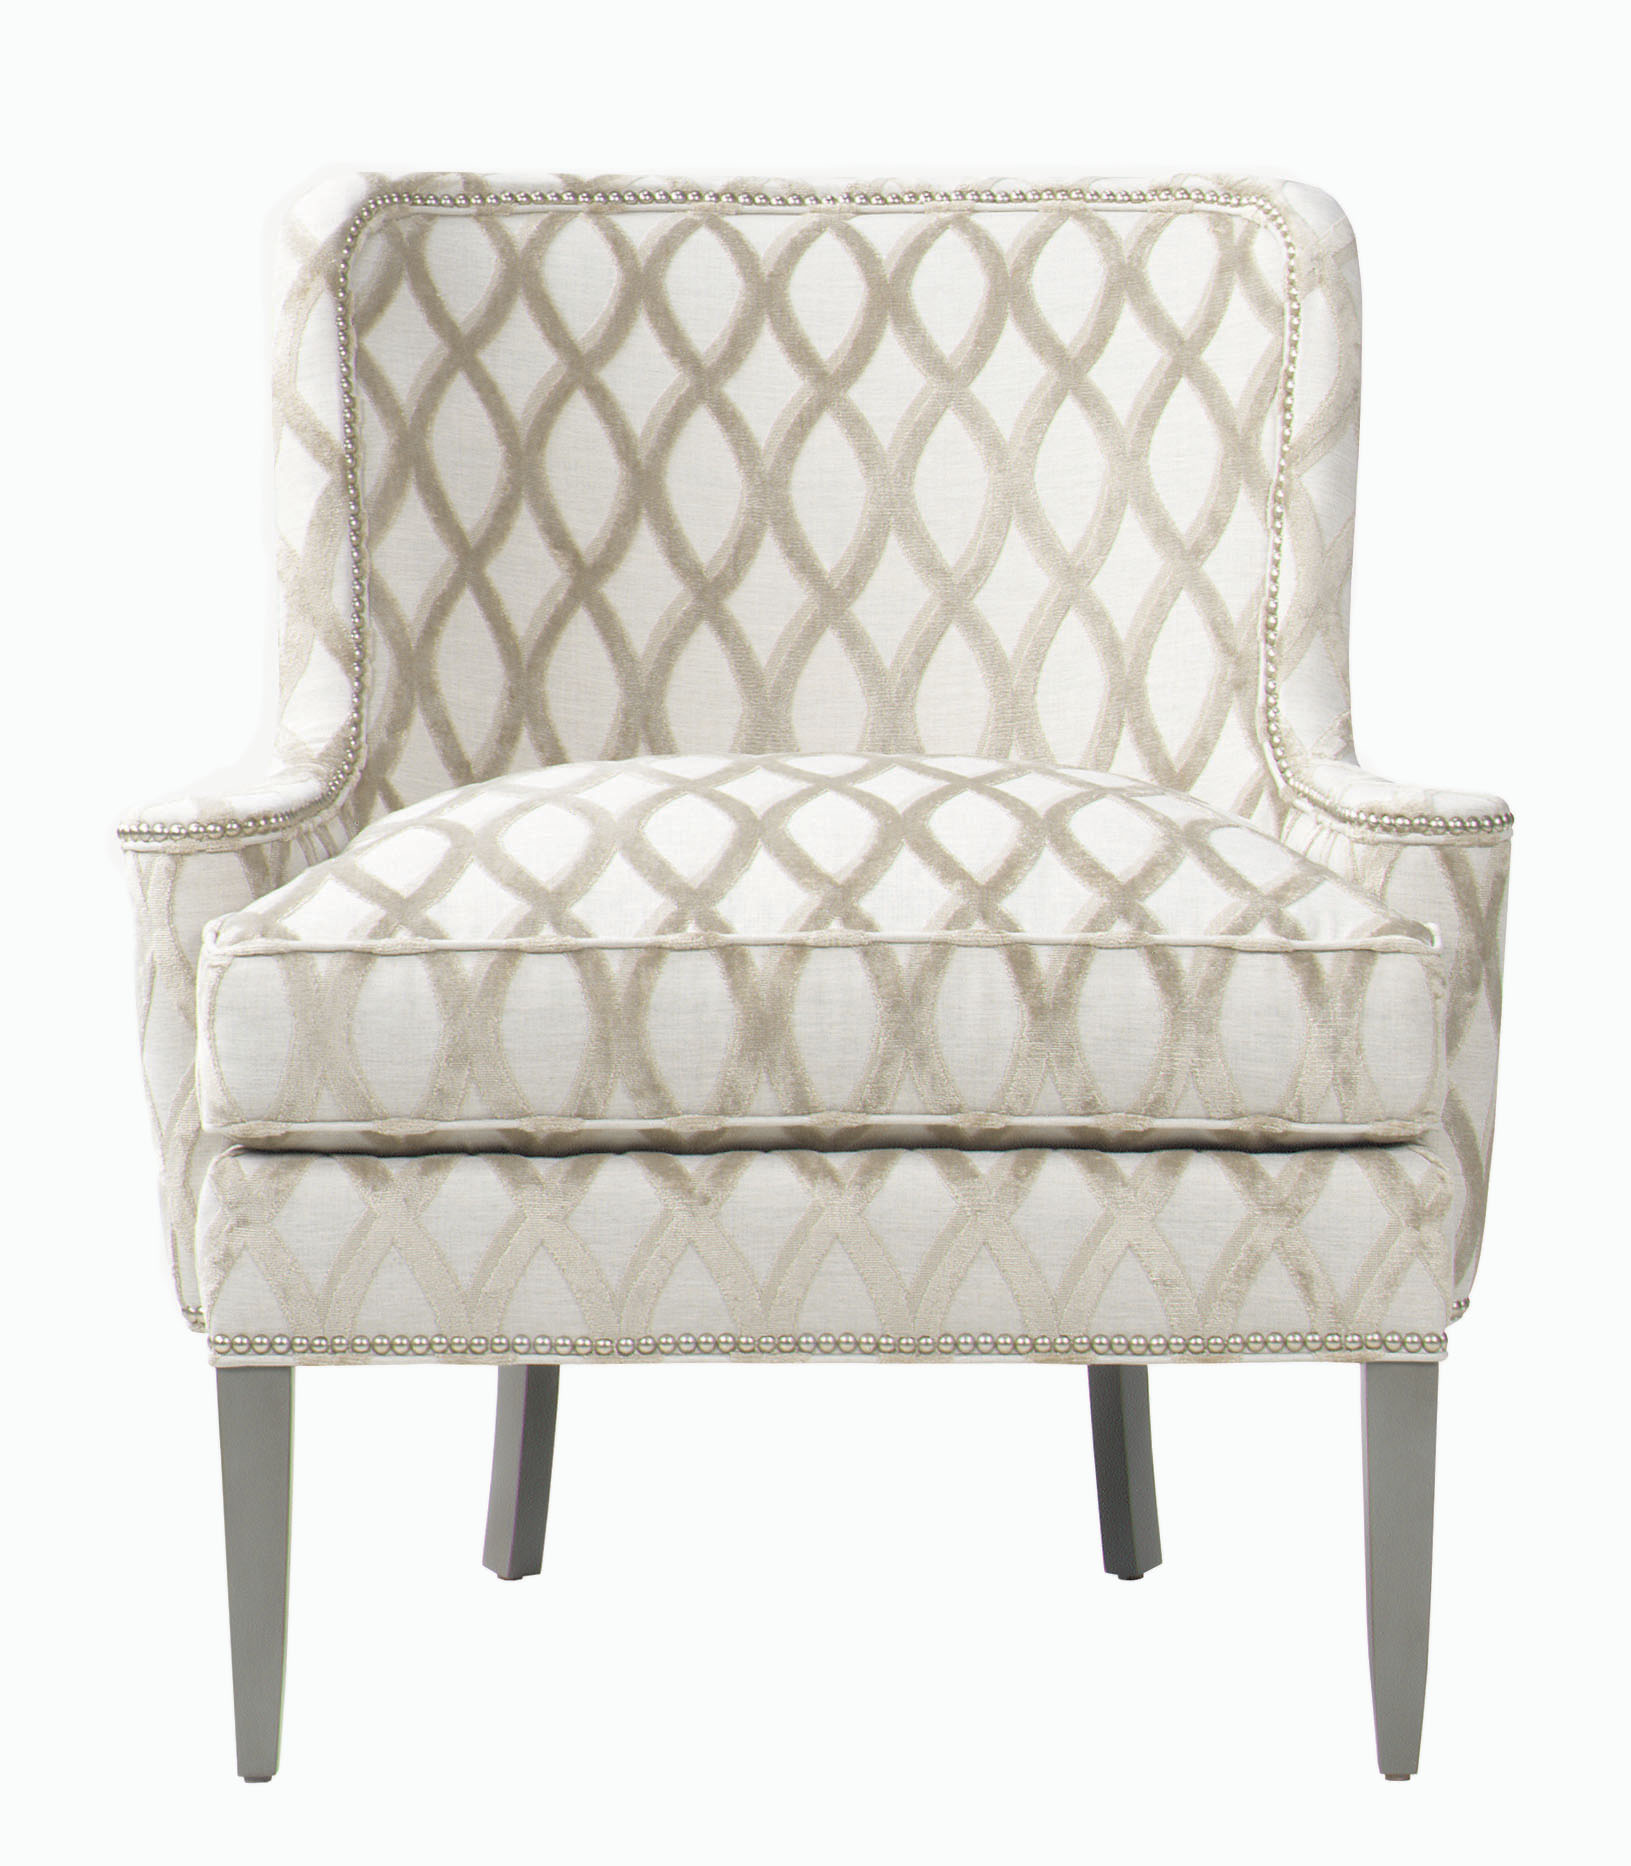 Charmant Thibaut Fine Furniture | Chairs, Sofas, Headboards U0026 More